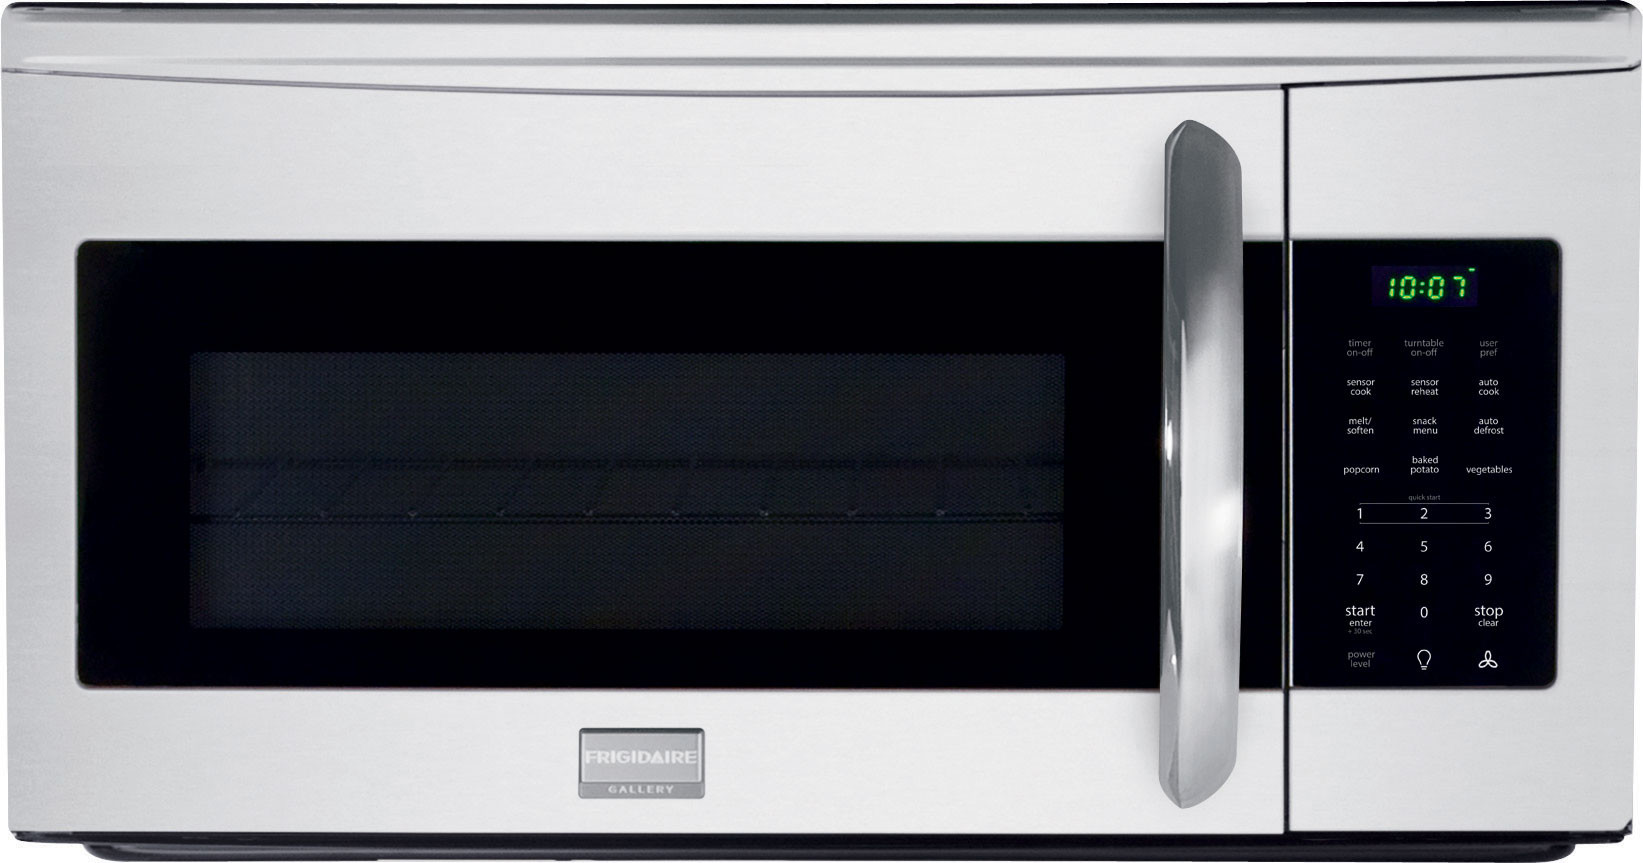 Frigidaire Gallery Series Fgmv175qf 30 Inch Over The Range Microwave Oven